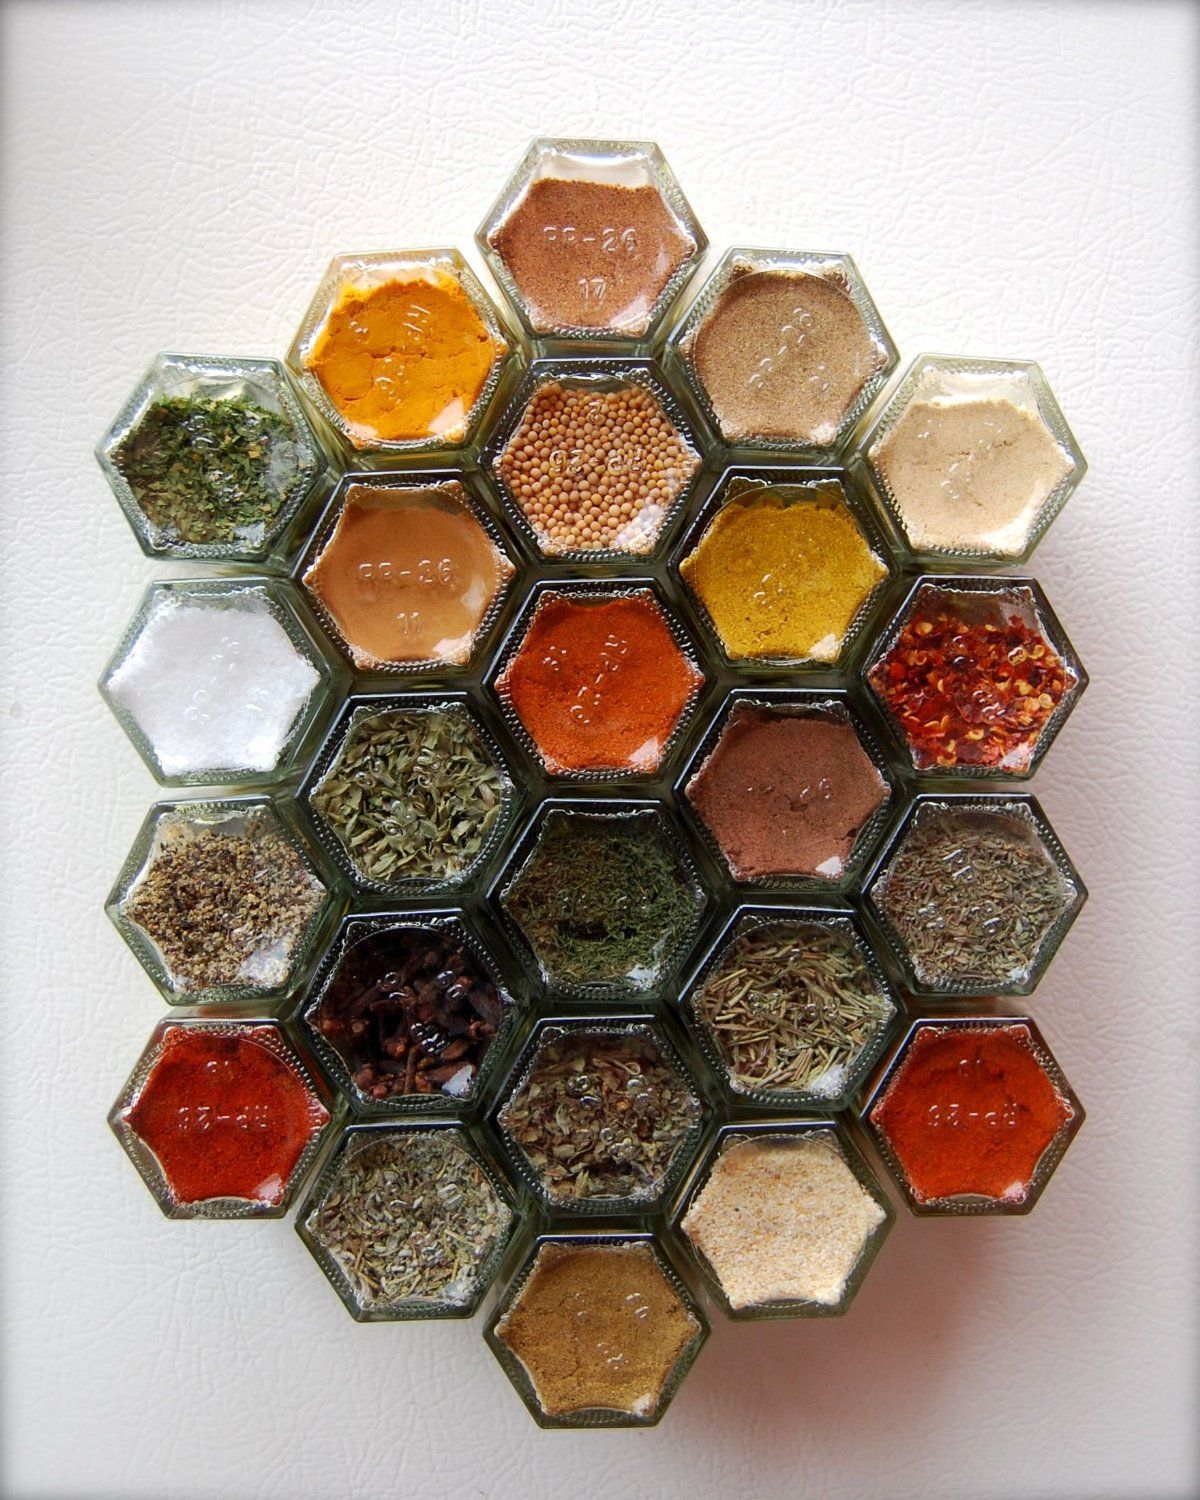 DIY HEX 24 GOLD Spice Rack (Includes